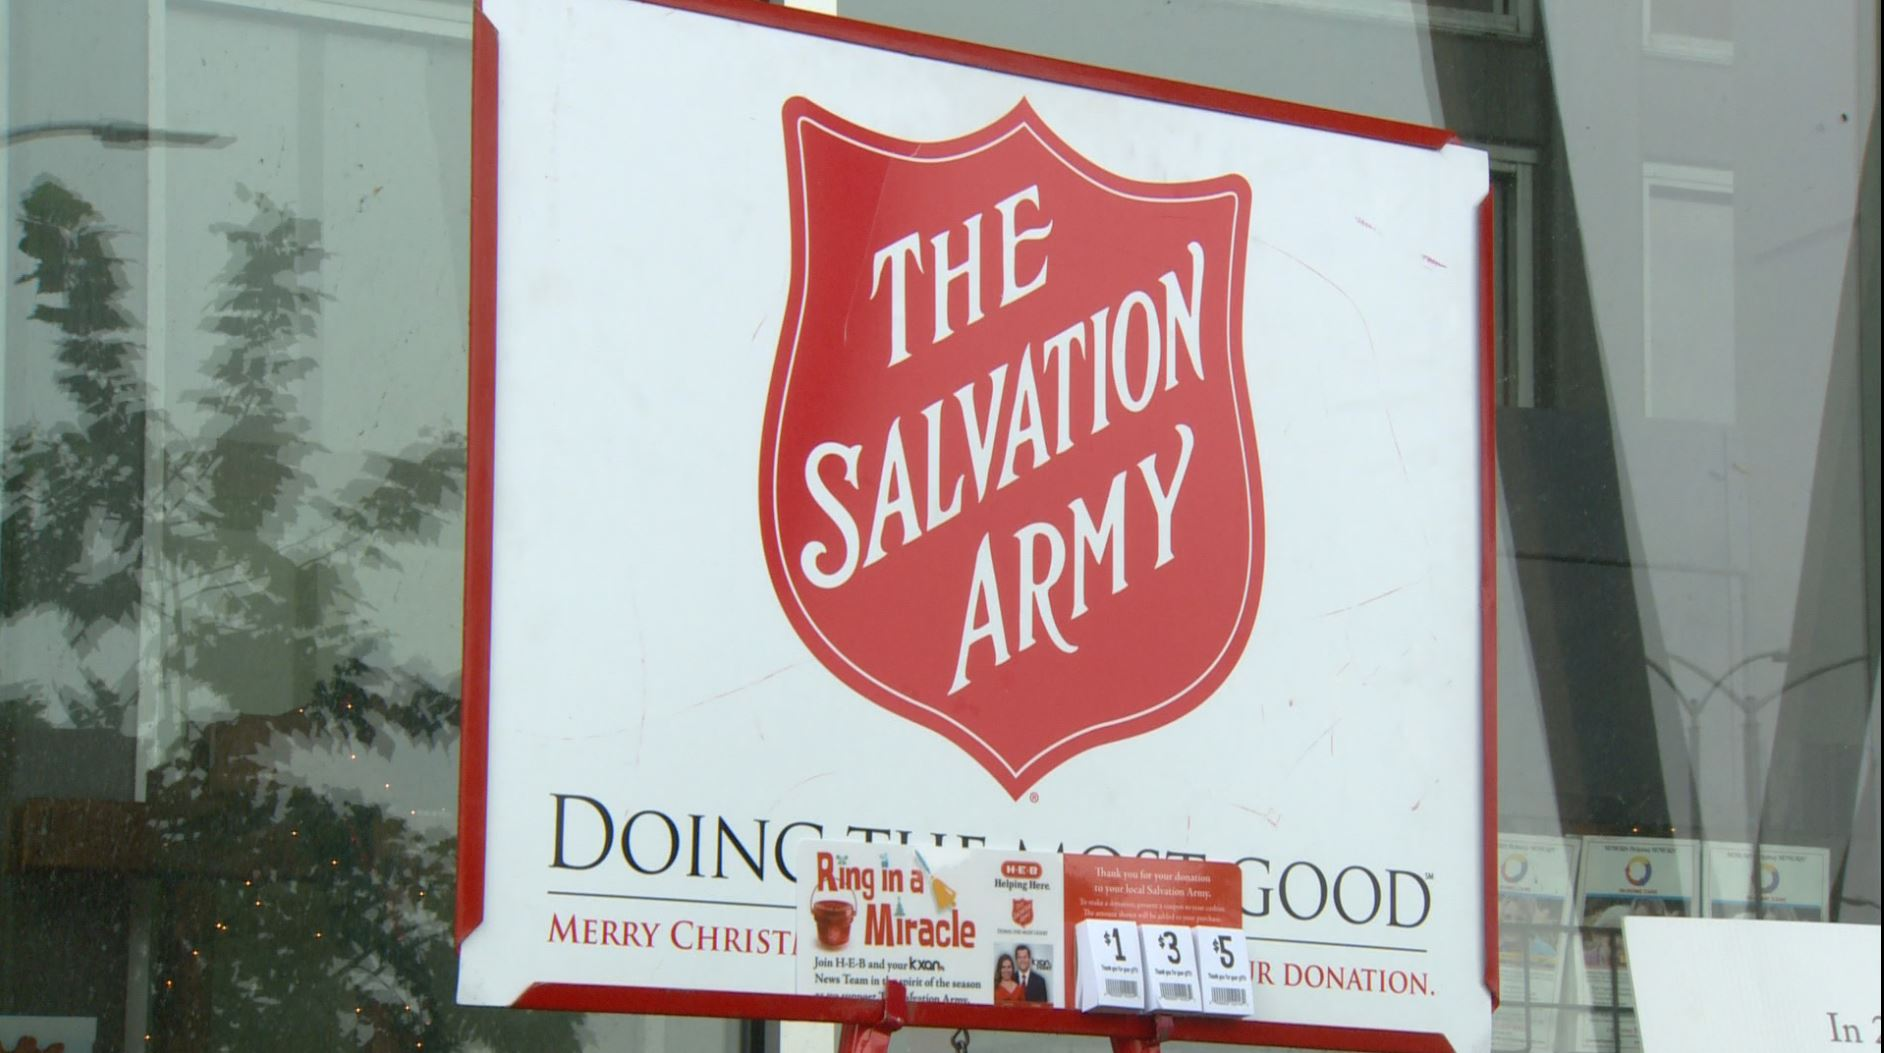 salvation army_582908